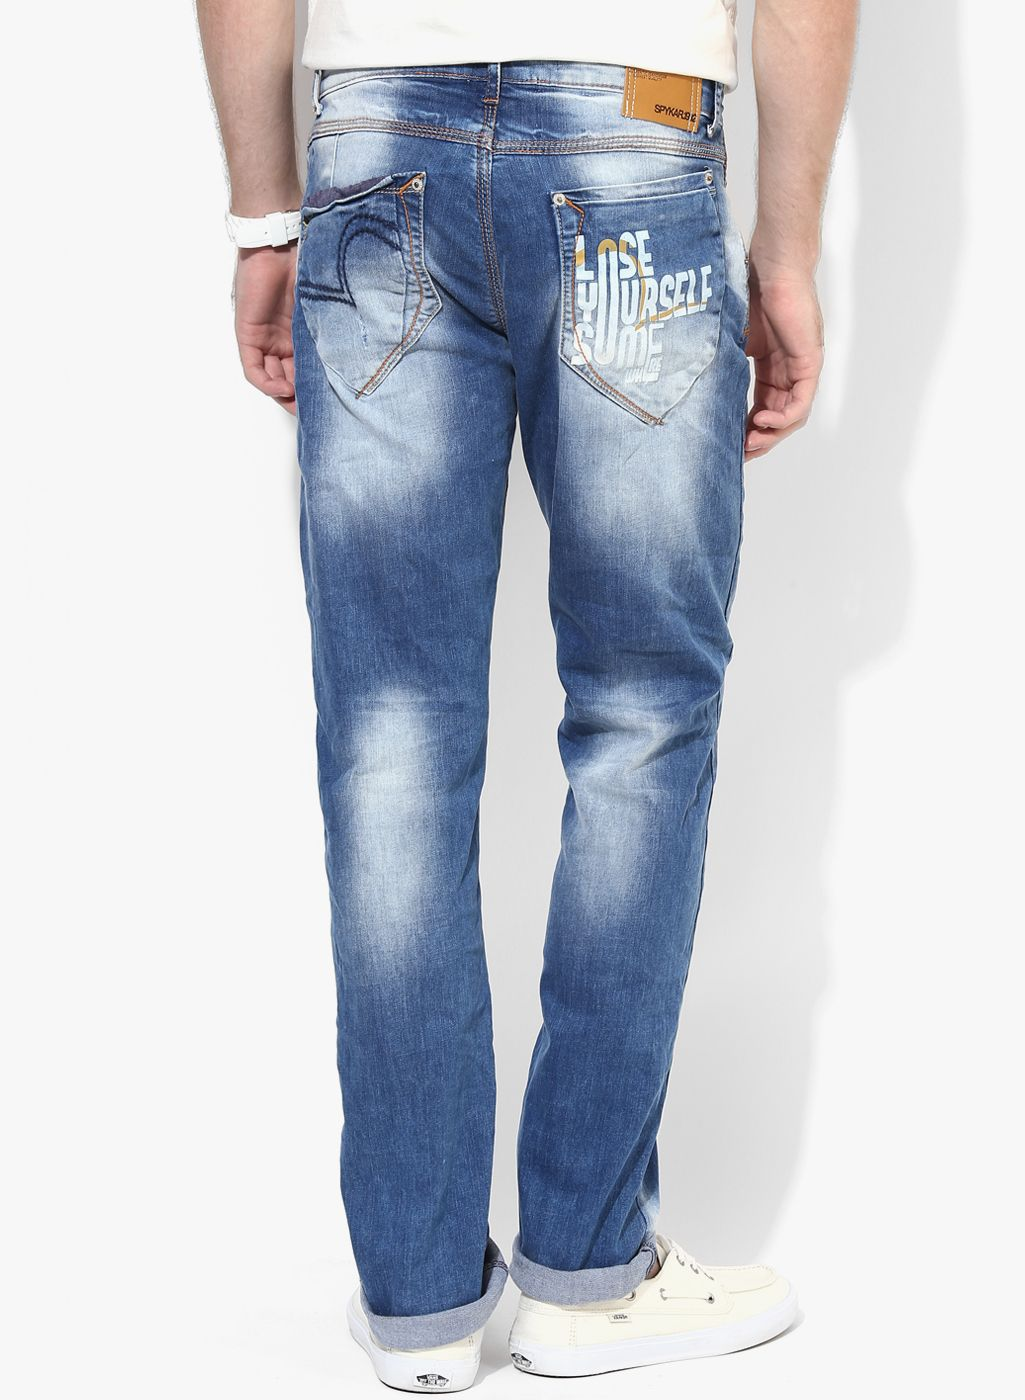 Buy Spykar Blue Mid Rise Narrow Fit Jeans for Men Online India, Best Prices,